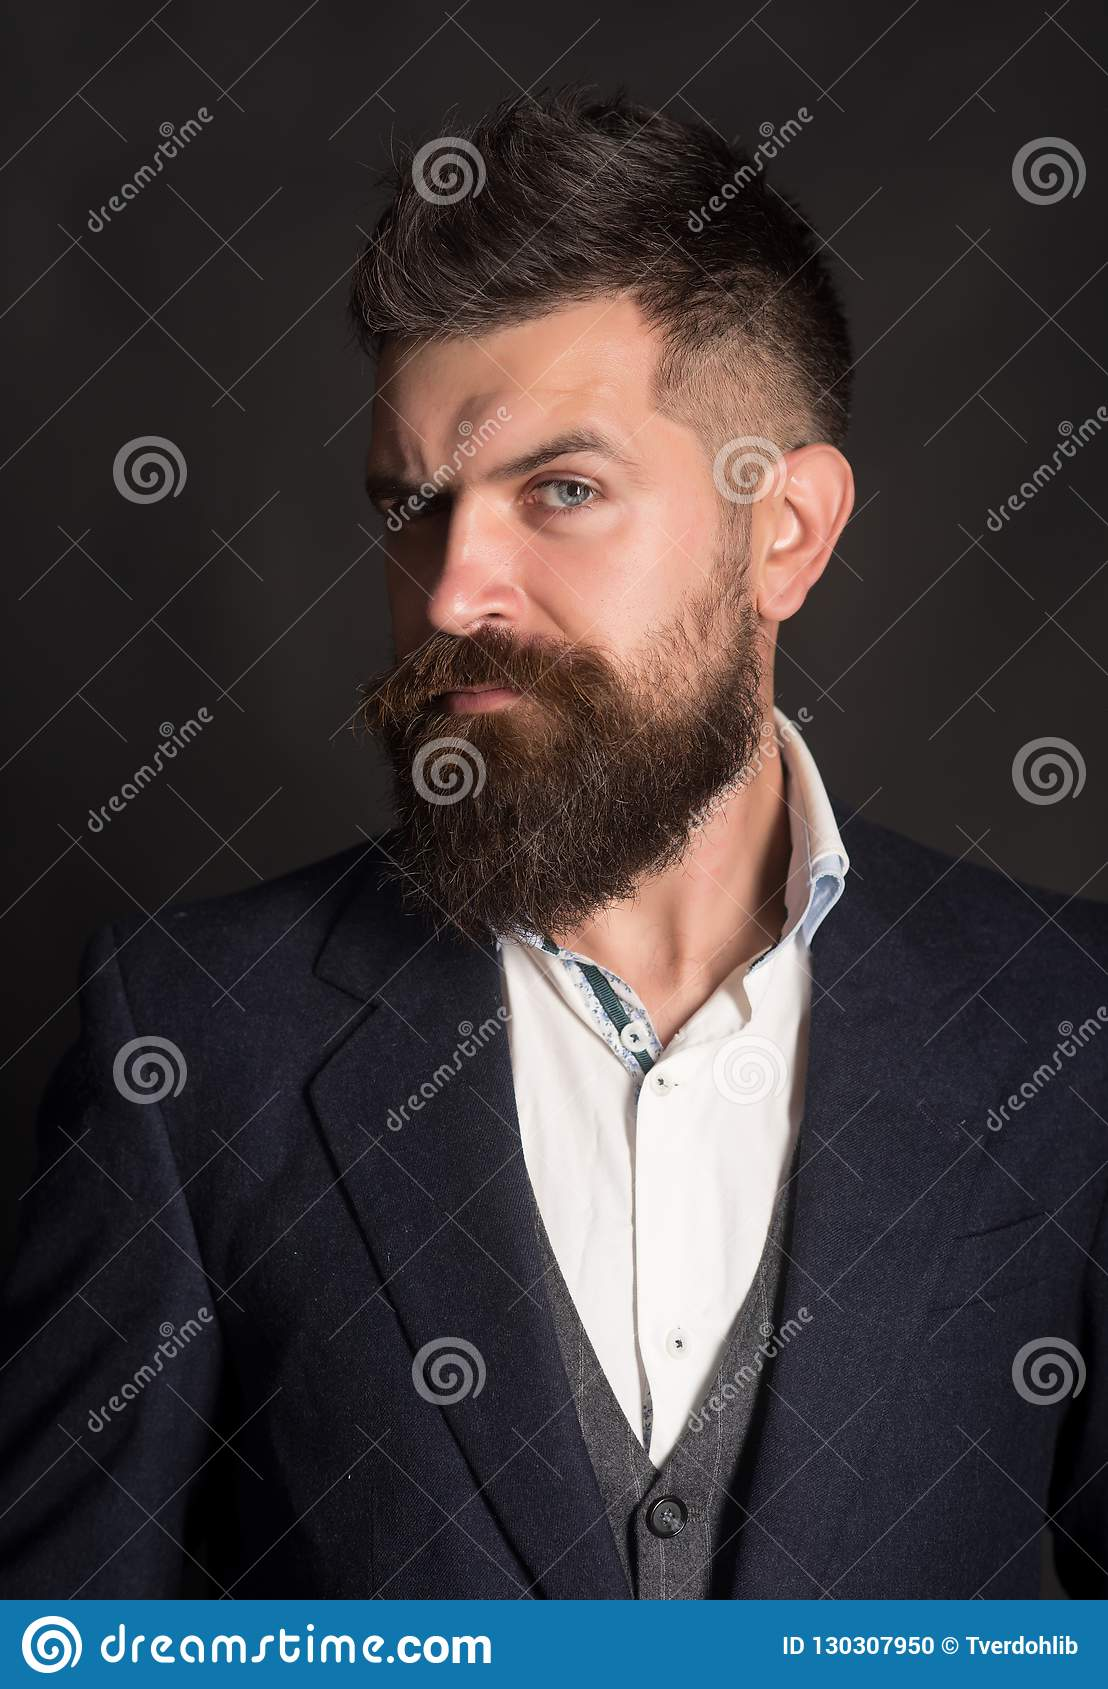 Awe Inspiring The Best Hipster Beard Style Ever Fashion Model With Long Beard Natural Hairstyles Runnerswayorg